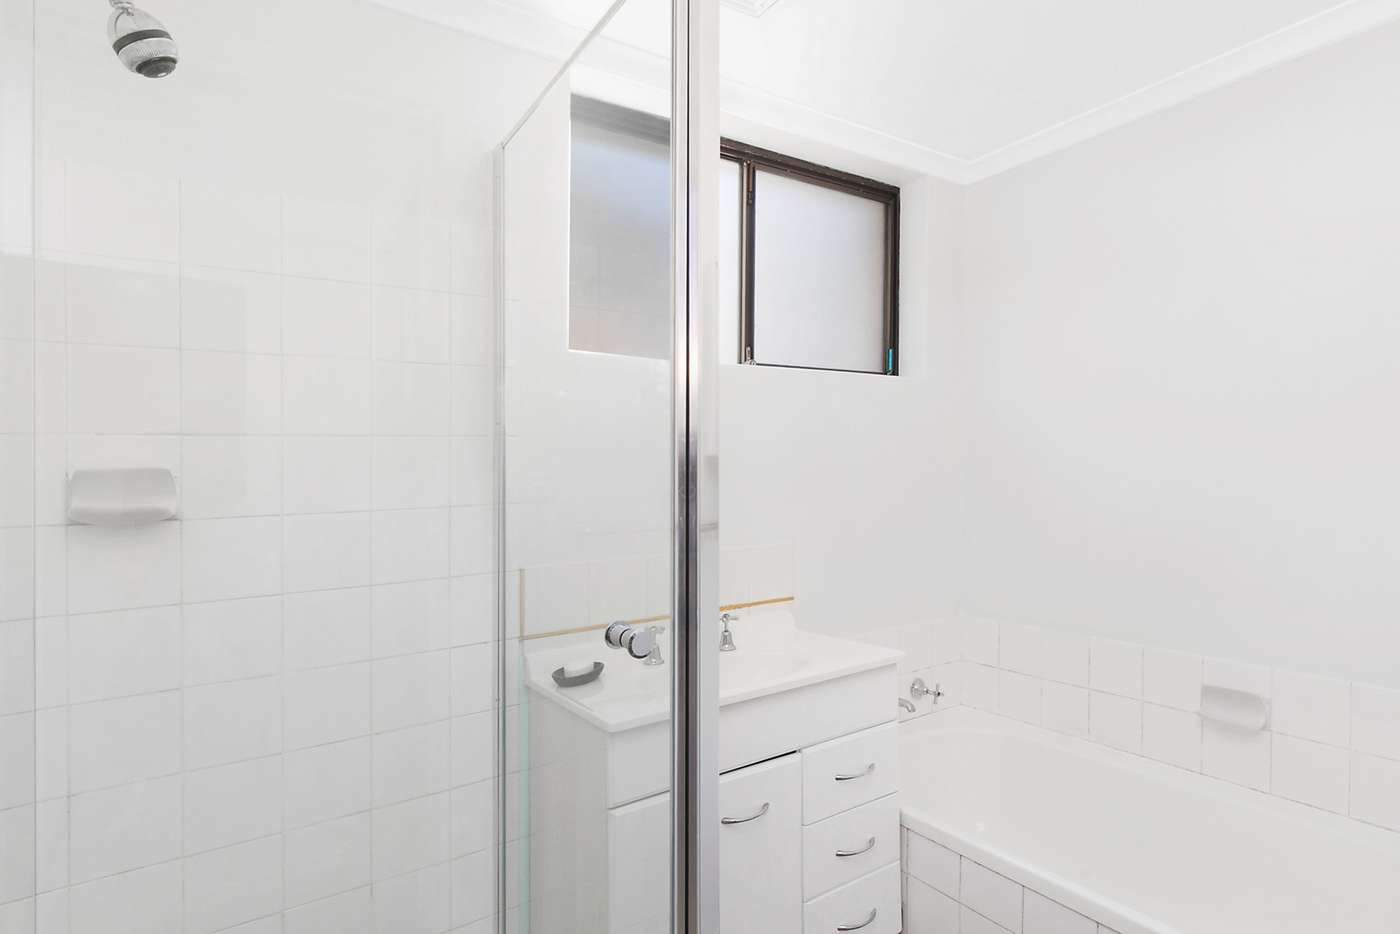 Sixth view of Homely apartment listing, 1/26-28 Burdett Street, Hornsby NSW 2077